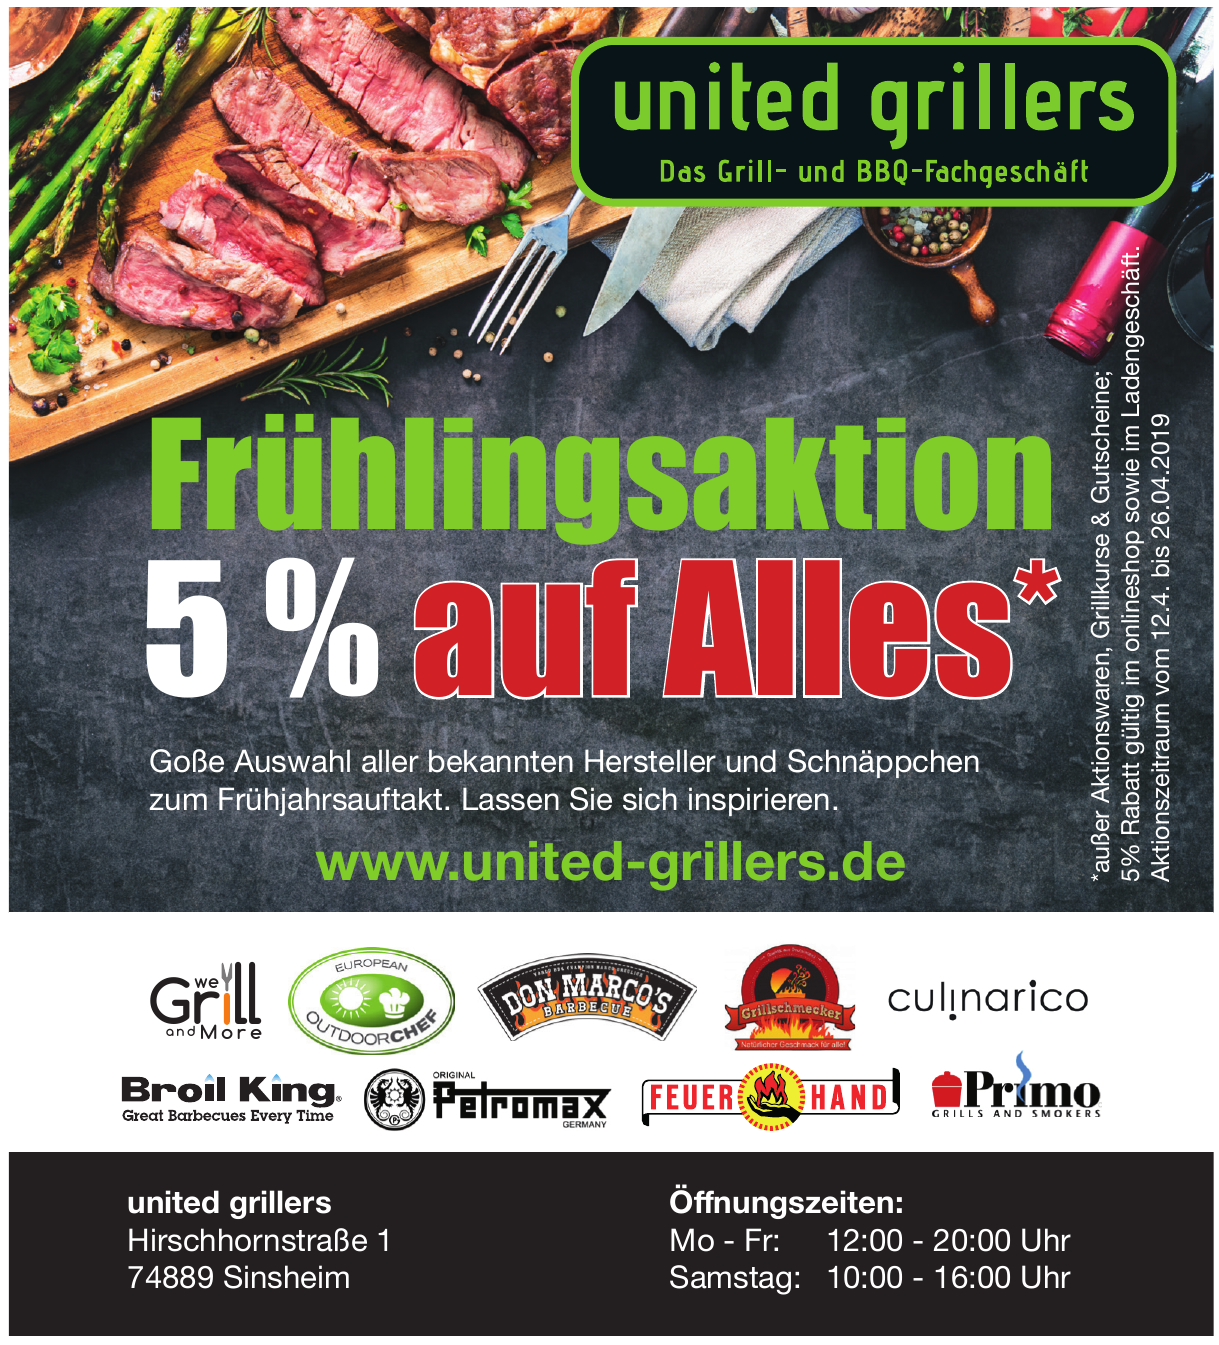 united grillers